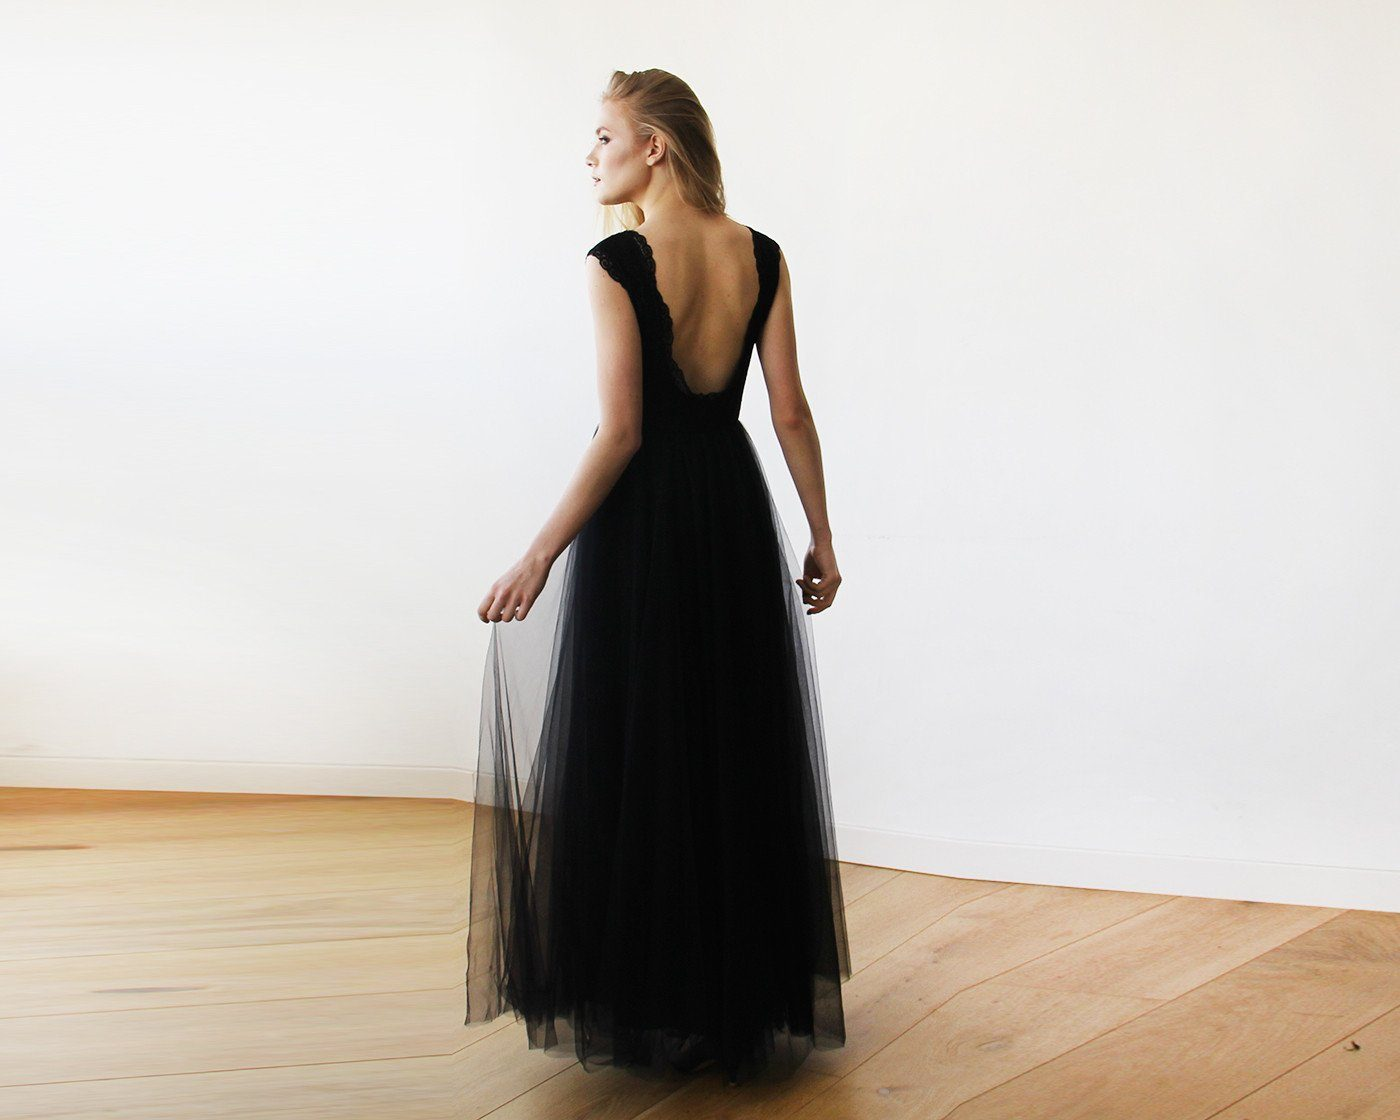 Black Tulle and Lace Sleeveless Maxi Gown 1145 - Blushfashion